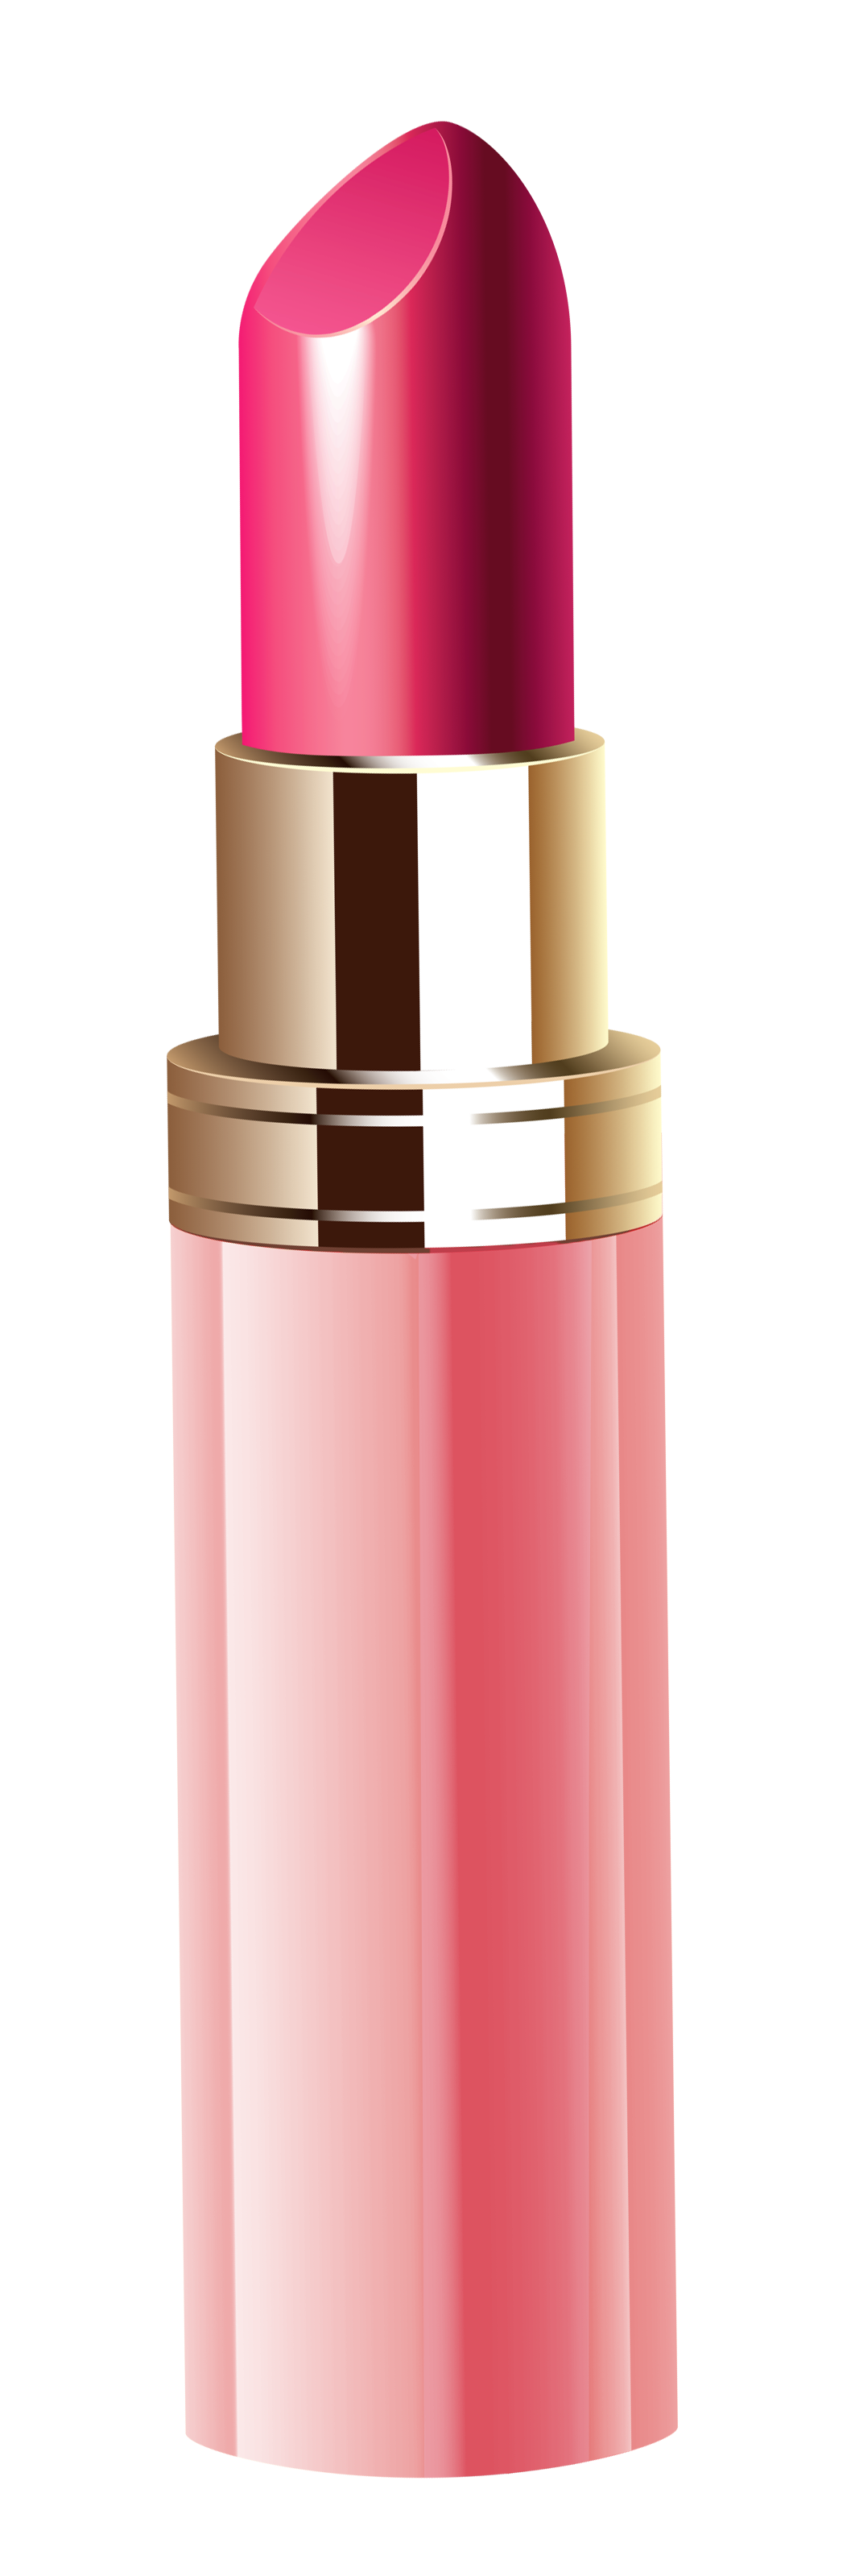 Free clipart lipstick image library Free Lipstick Cliparts, Download Free Clip Art, Free Clip Art on ... image library